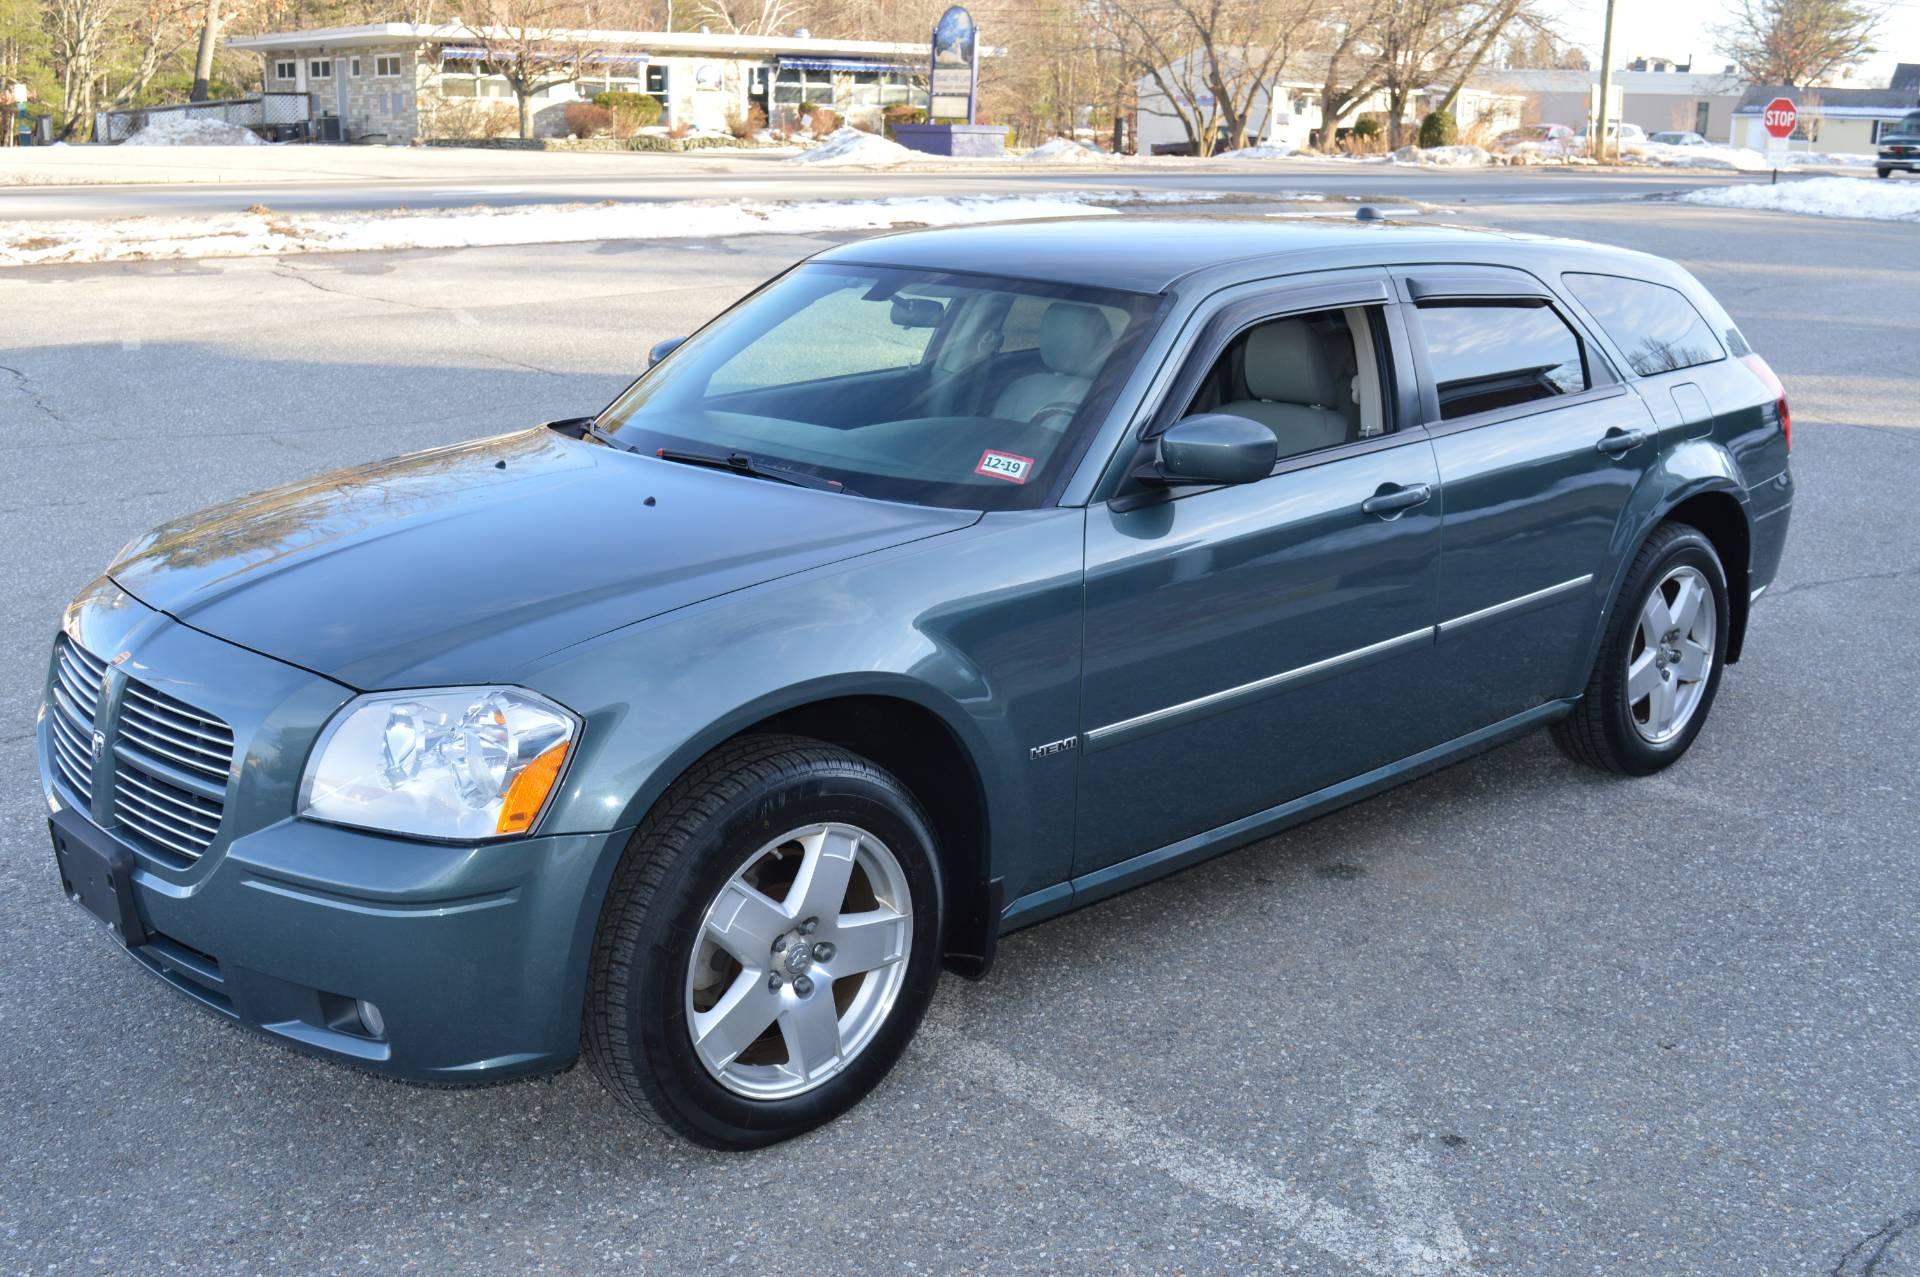 2006 Dodge MAGNUM R/T AWD in Derry, New Hampshire - Photo 2